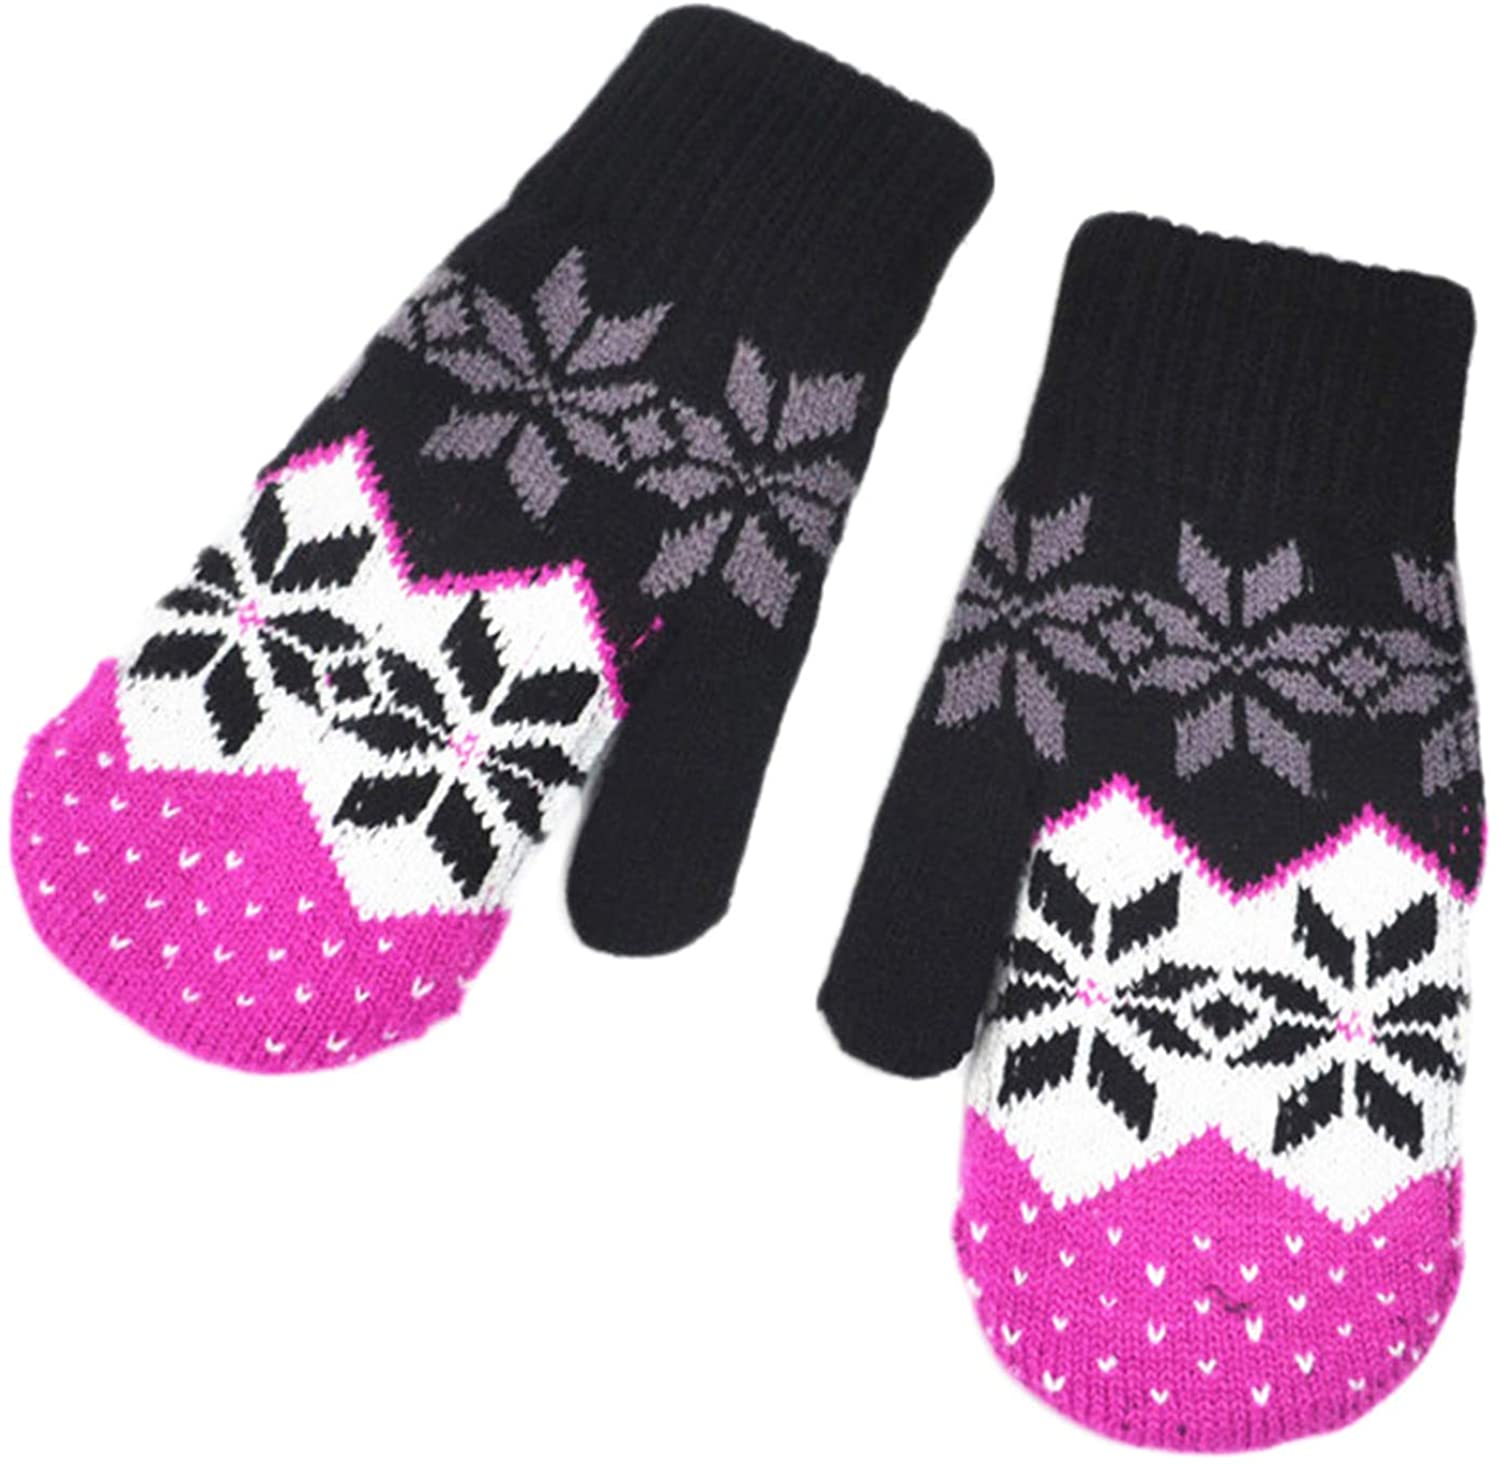 Soluo Thick Double-Layer Autumn Winter Knitted Gloves Women's Snowflake Print Mittens Unisex Plus Velvet Warm Gloves